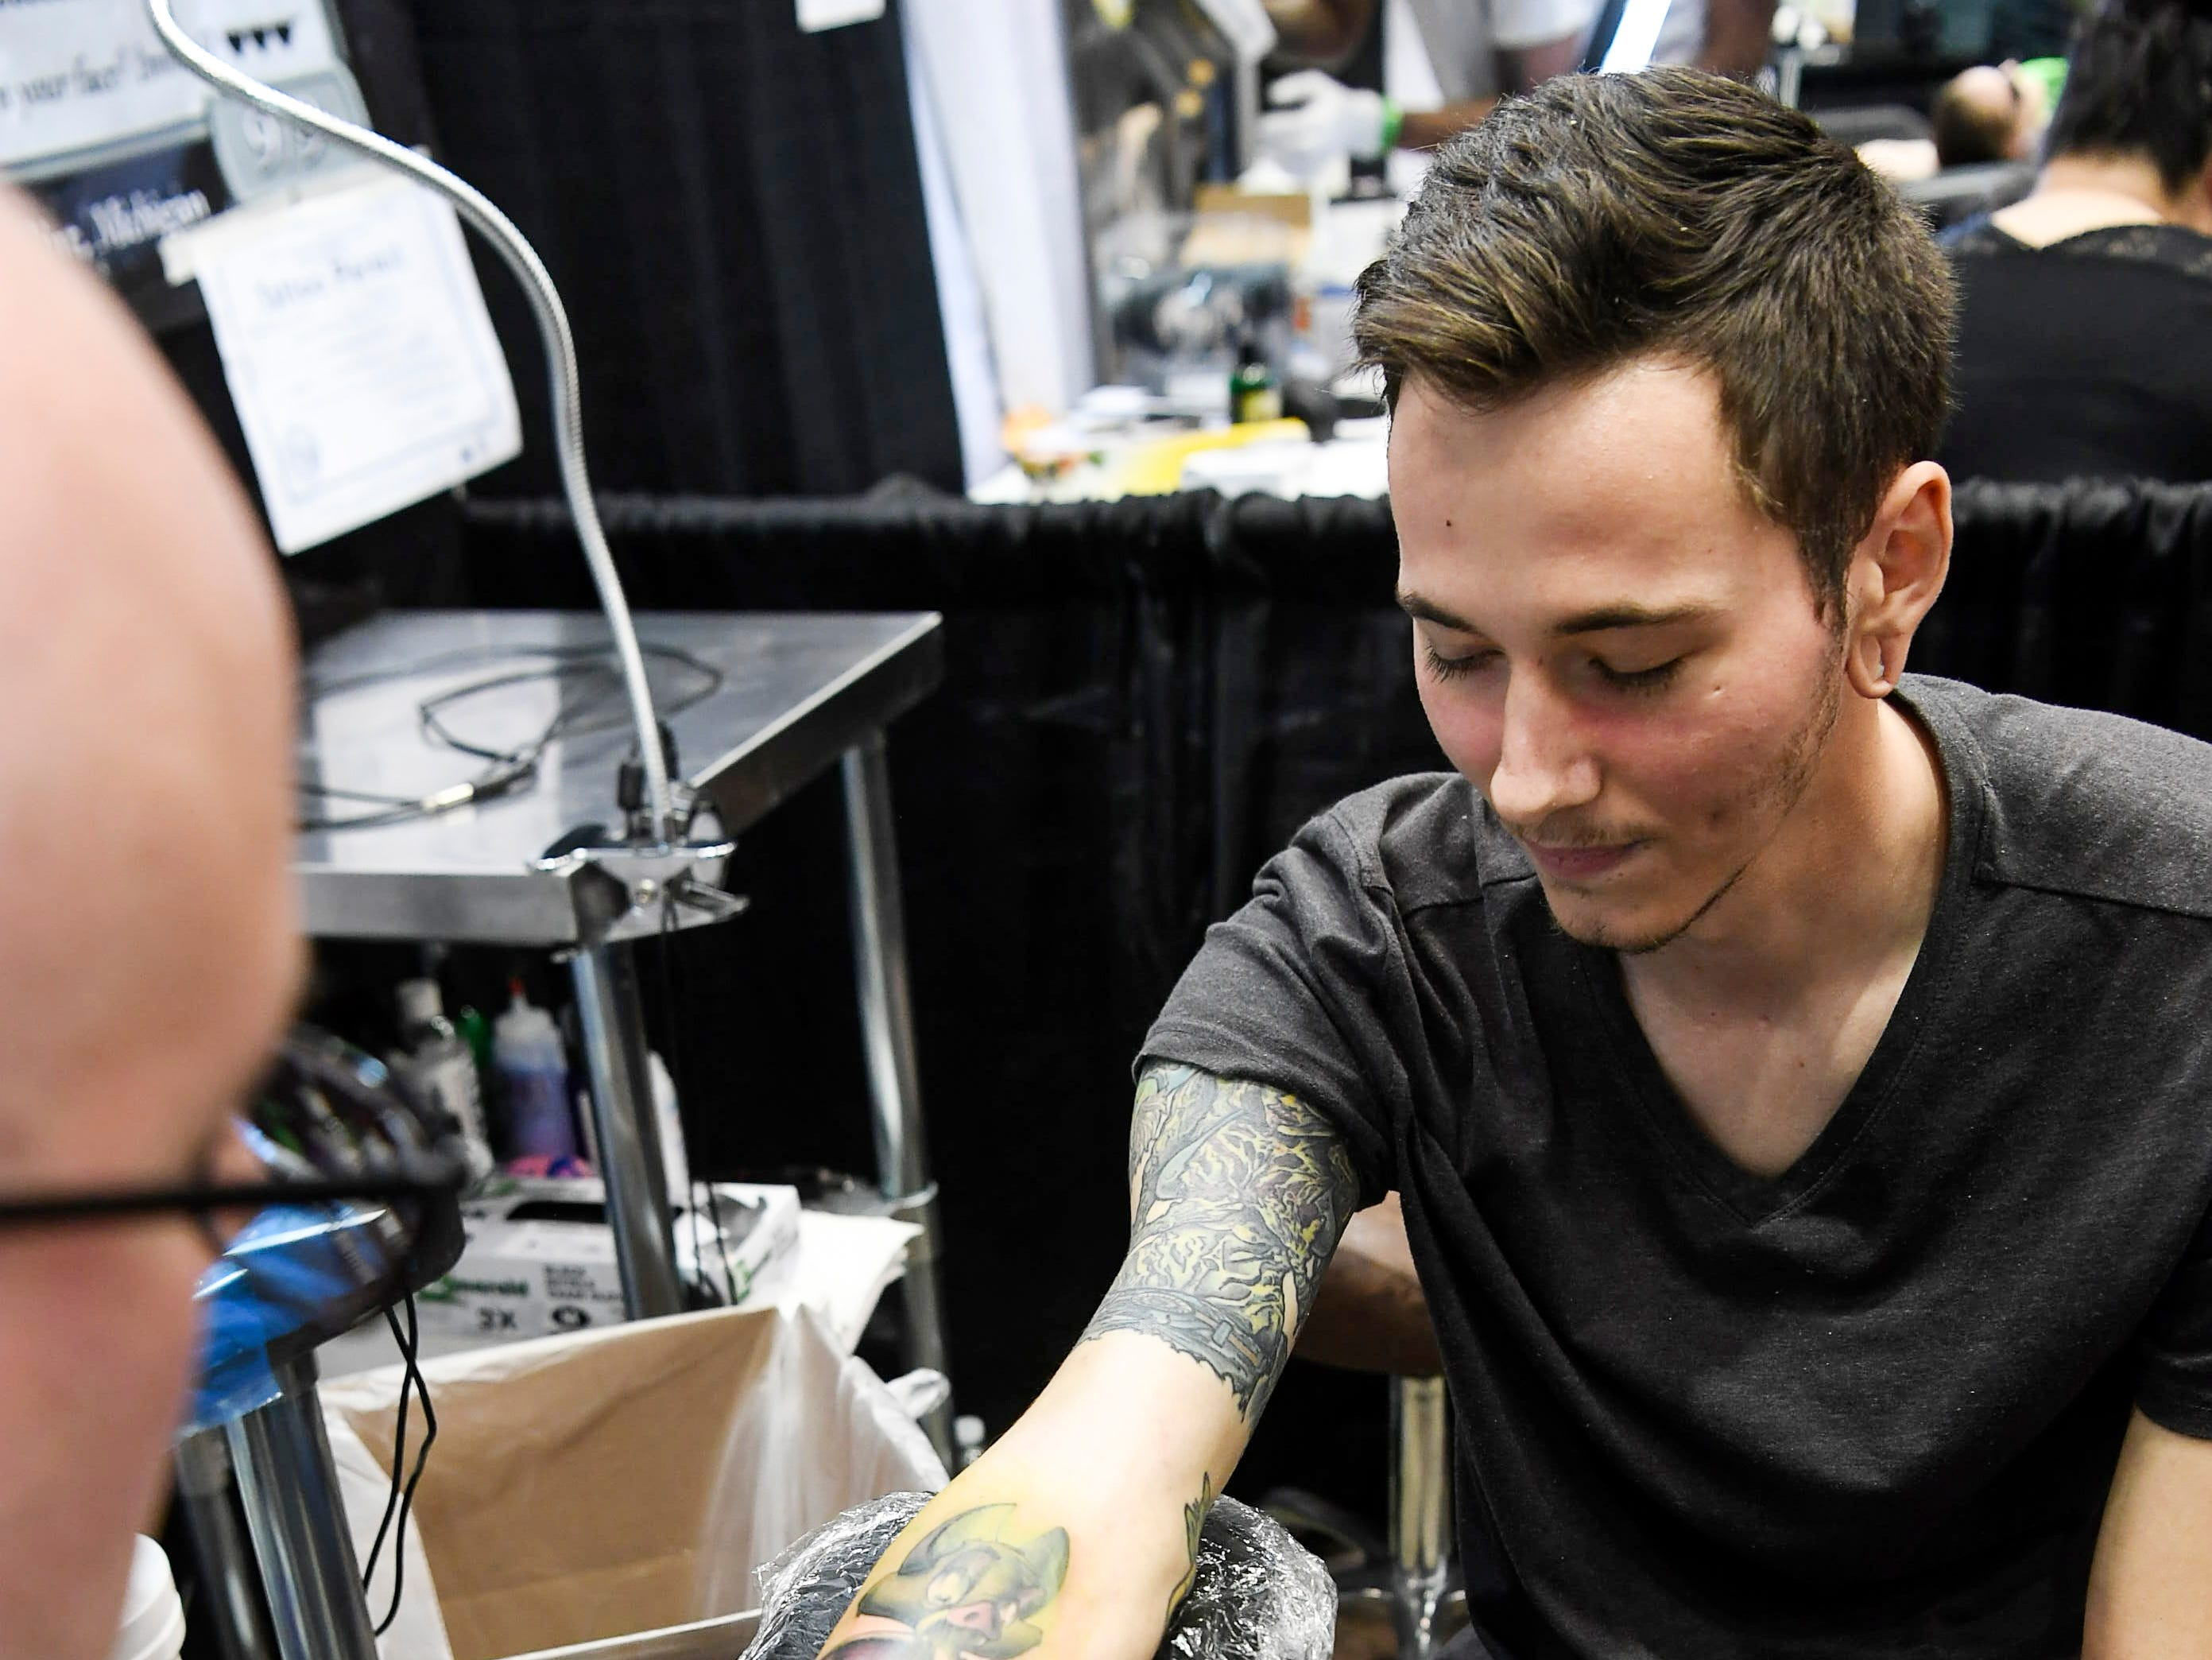 Scenes from the Asheville Tattoo Convention at the US Cellular Center April 28, 2019.